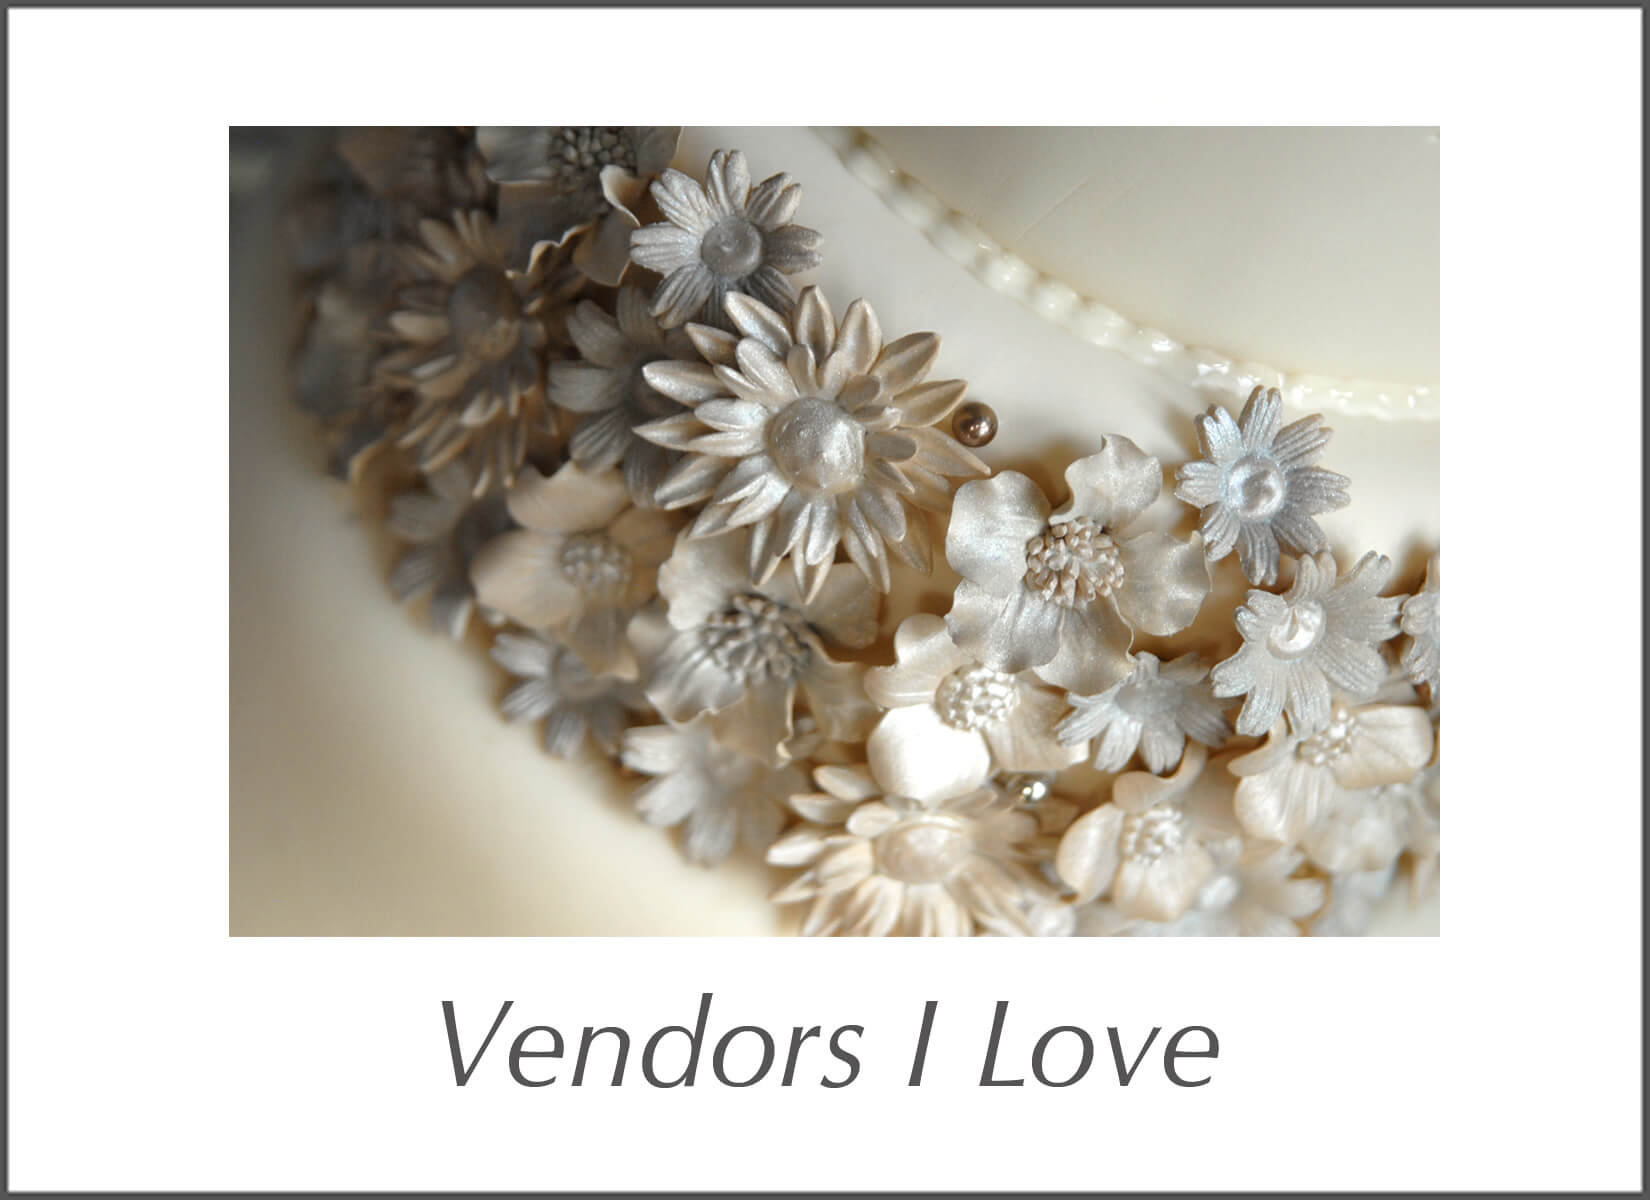 List of favorite Michigan wedding photographer's favorite wedding vendors to work with